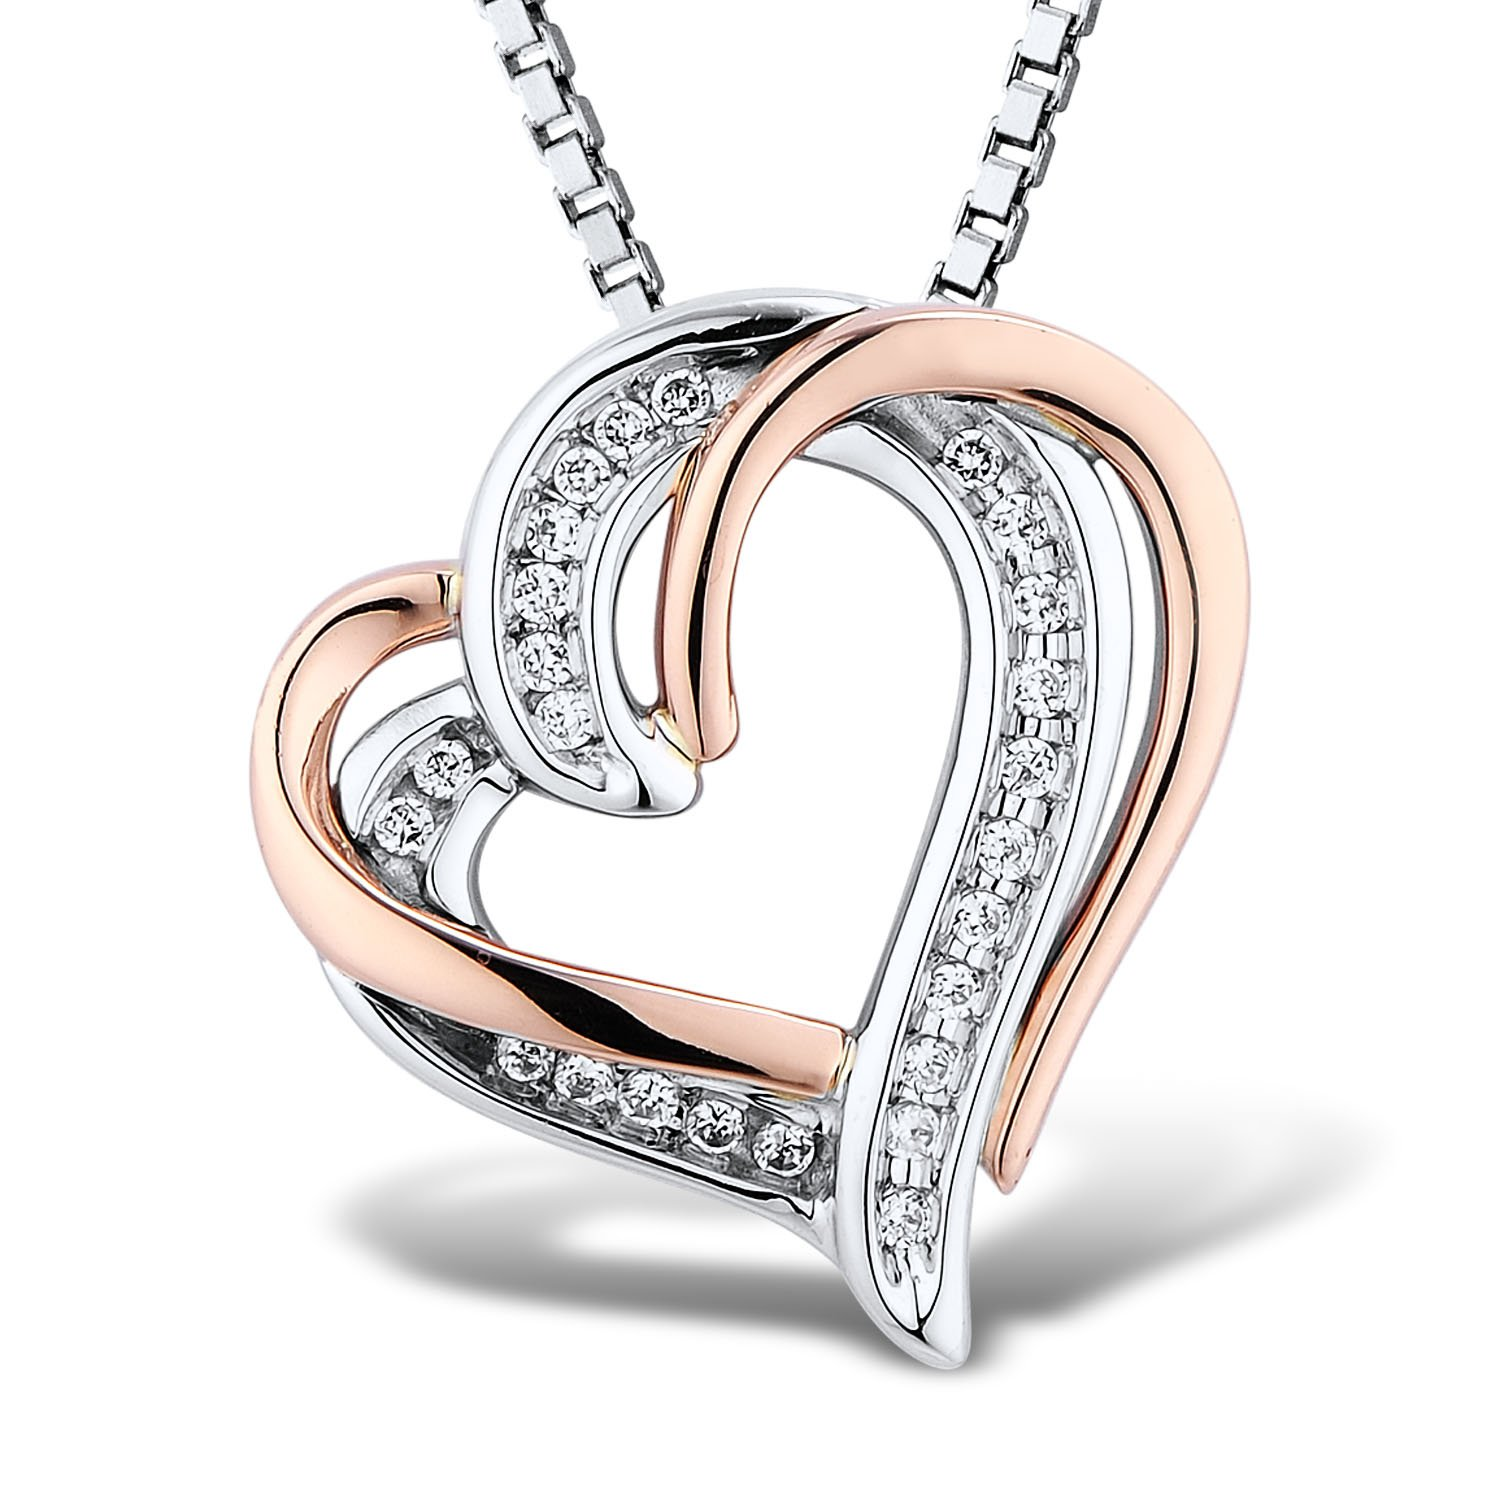 Diamond Heart Necklace 1/10 cttw in Sterling Silver and 10k Rose Gold - 18 Inch Chain by Diamond Classic Jewelry